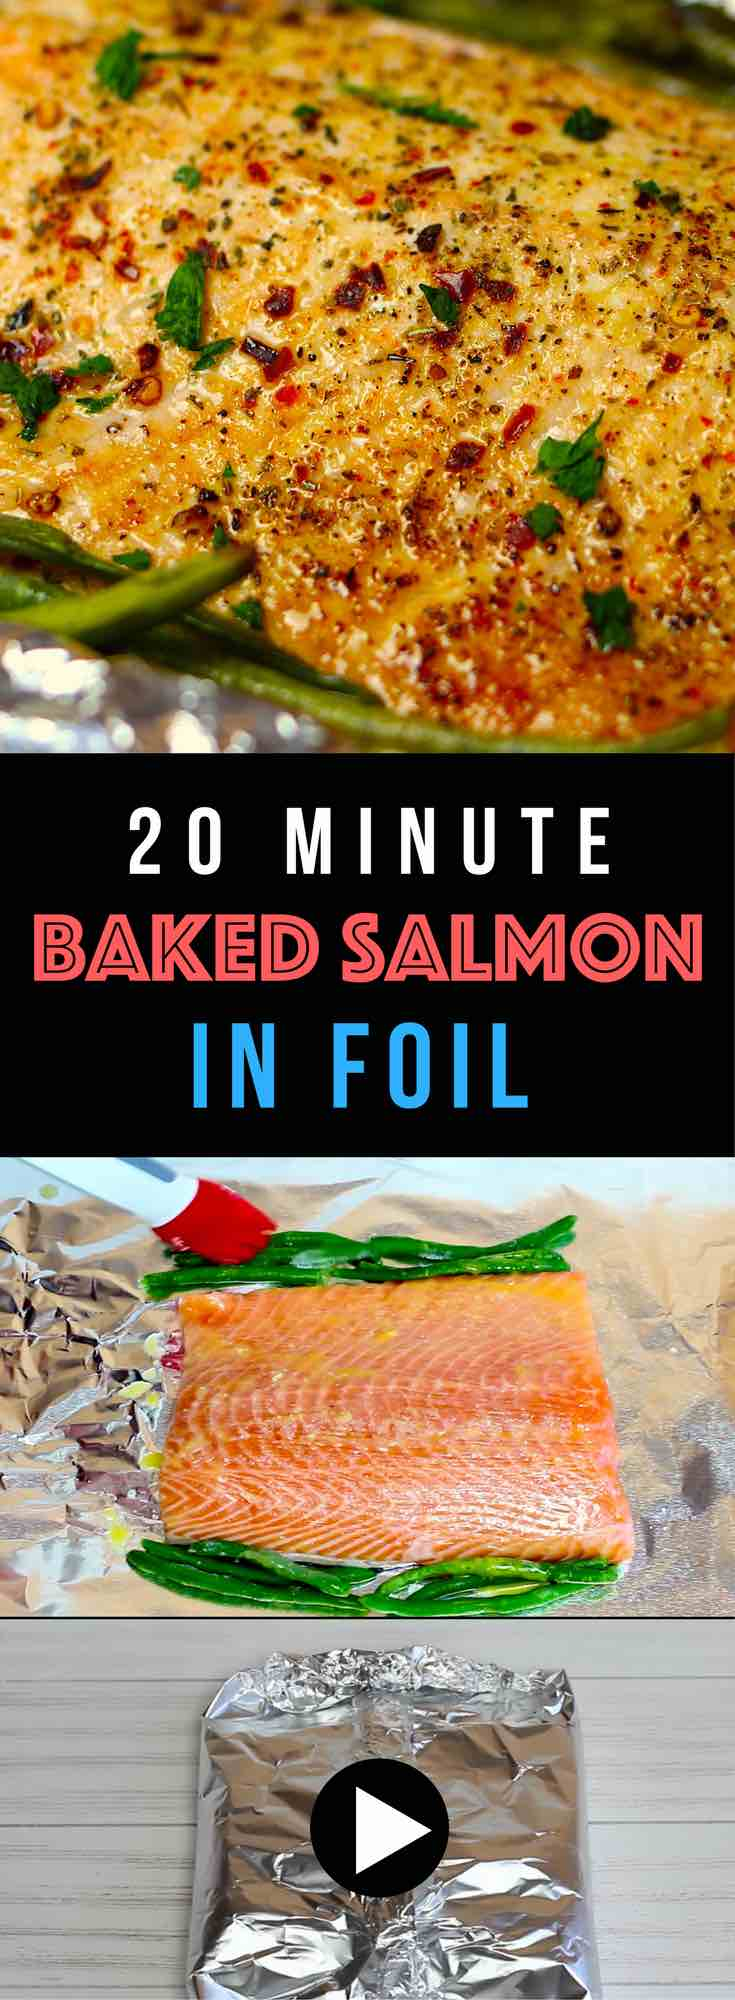 Healthy and easiest dinner ever! Salmon and green beans are baked in foil, which makes it moist, tender, and flakey. Plus clean up is a breeze! Only a few simple ingredients needed: Salmon, green beans, butter, lemon juice, Italian seasoning, salt & pepper, red pepper flakes and parsley for garnishing. Healthy, Quick and Easy recipe. Video recipe. | Tipbuzz.com